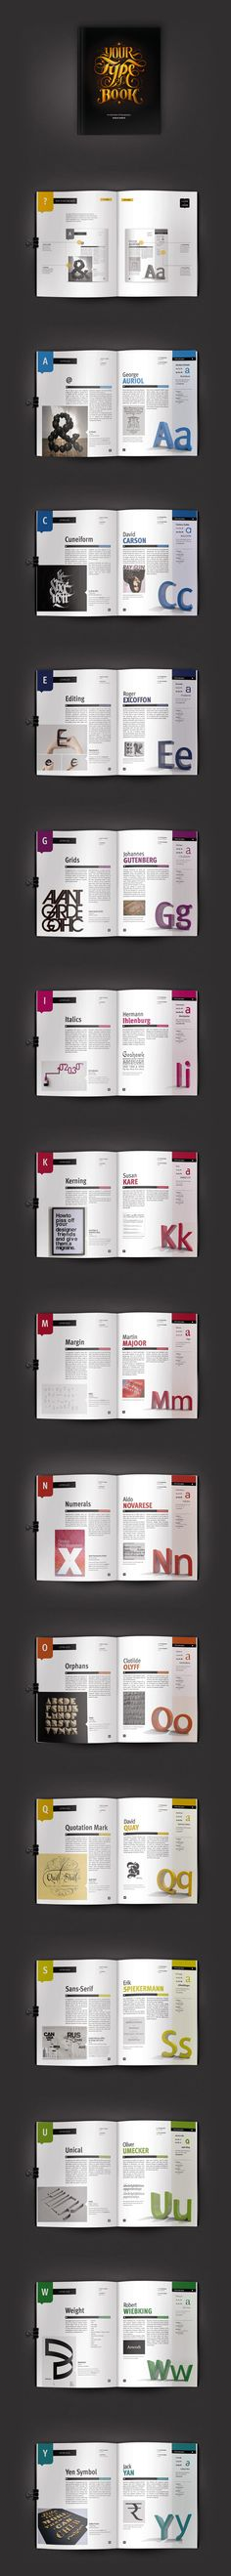 Your Type of Book on Typography Served